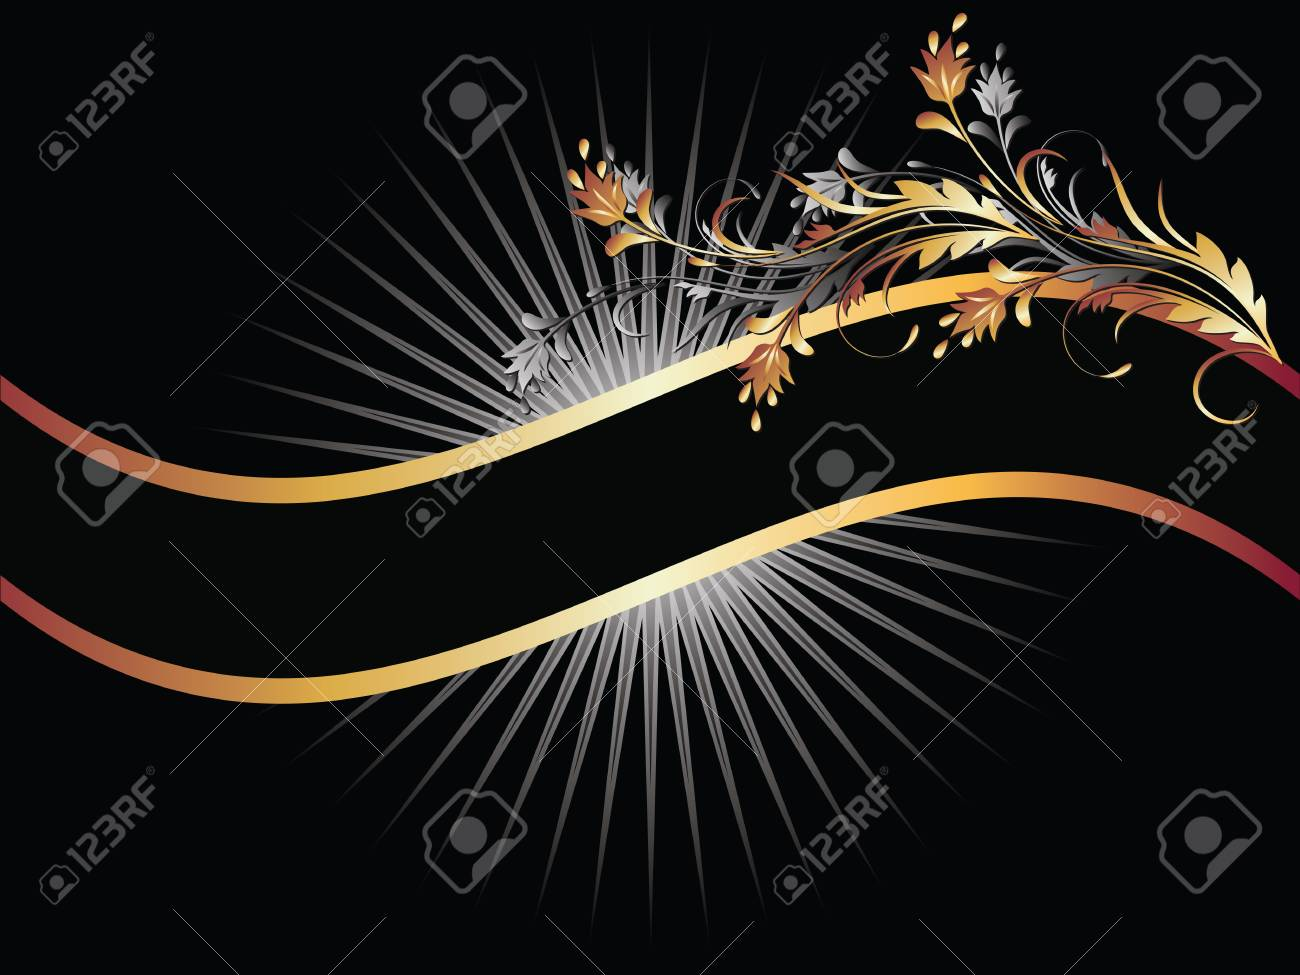 Background with golden ornament for various design artwork Stock Vector - 8136669